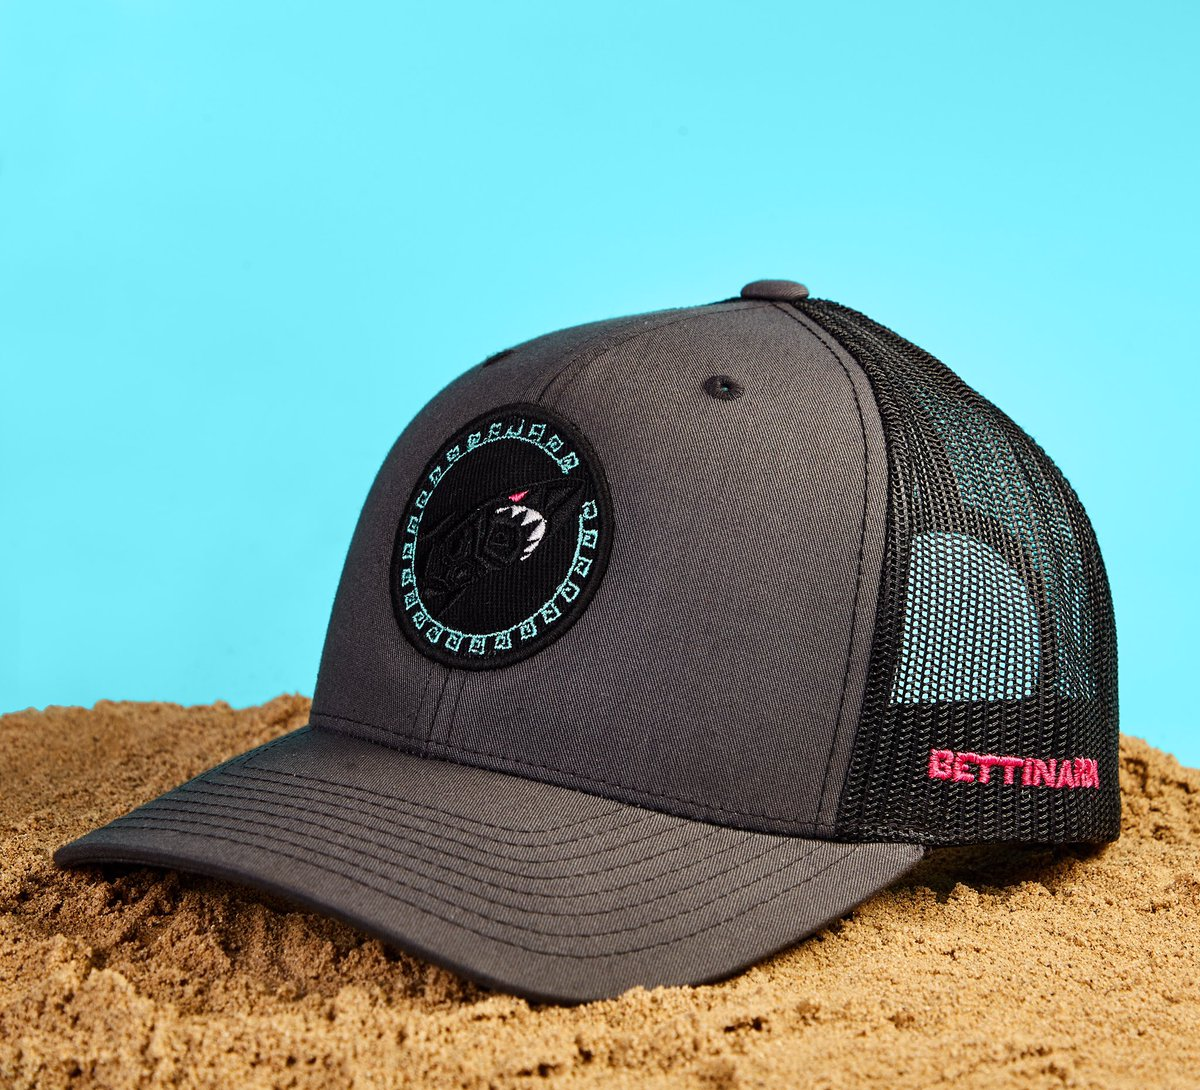 The 2019 Tiki trucker hat is here! Releasing online in the Hive on 1 ... d2c32f80ade